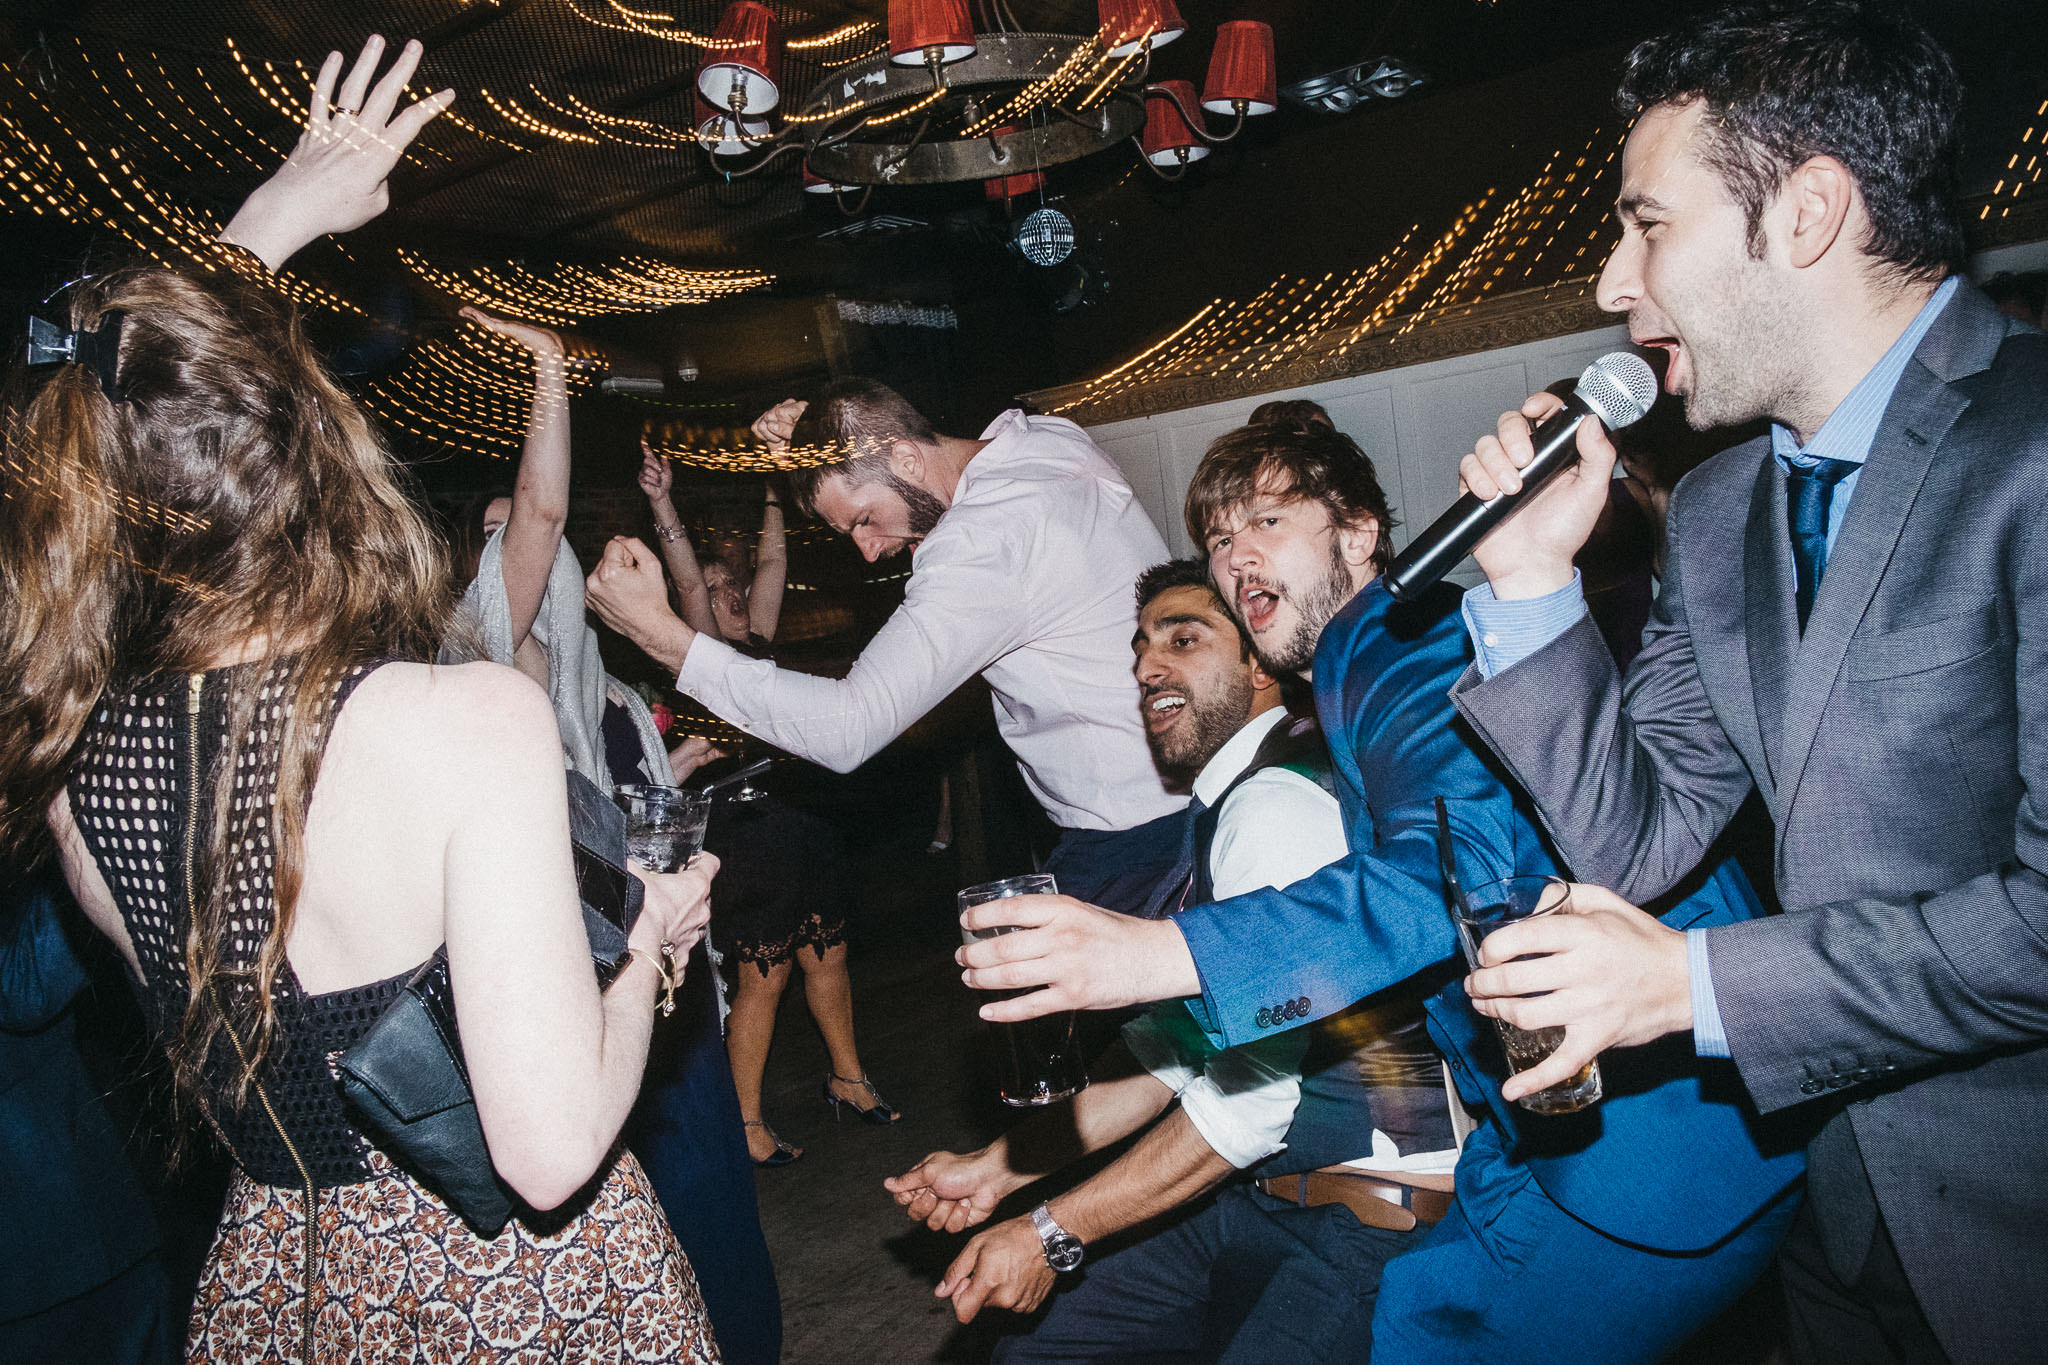 North East wedding guests know how to party!